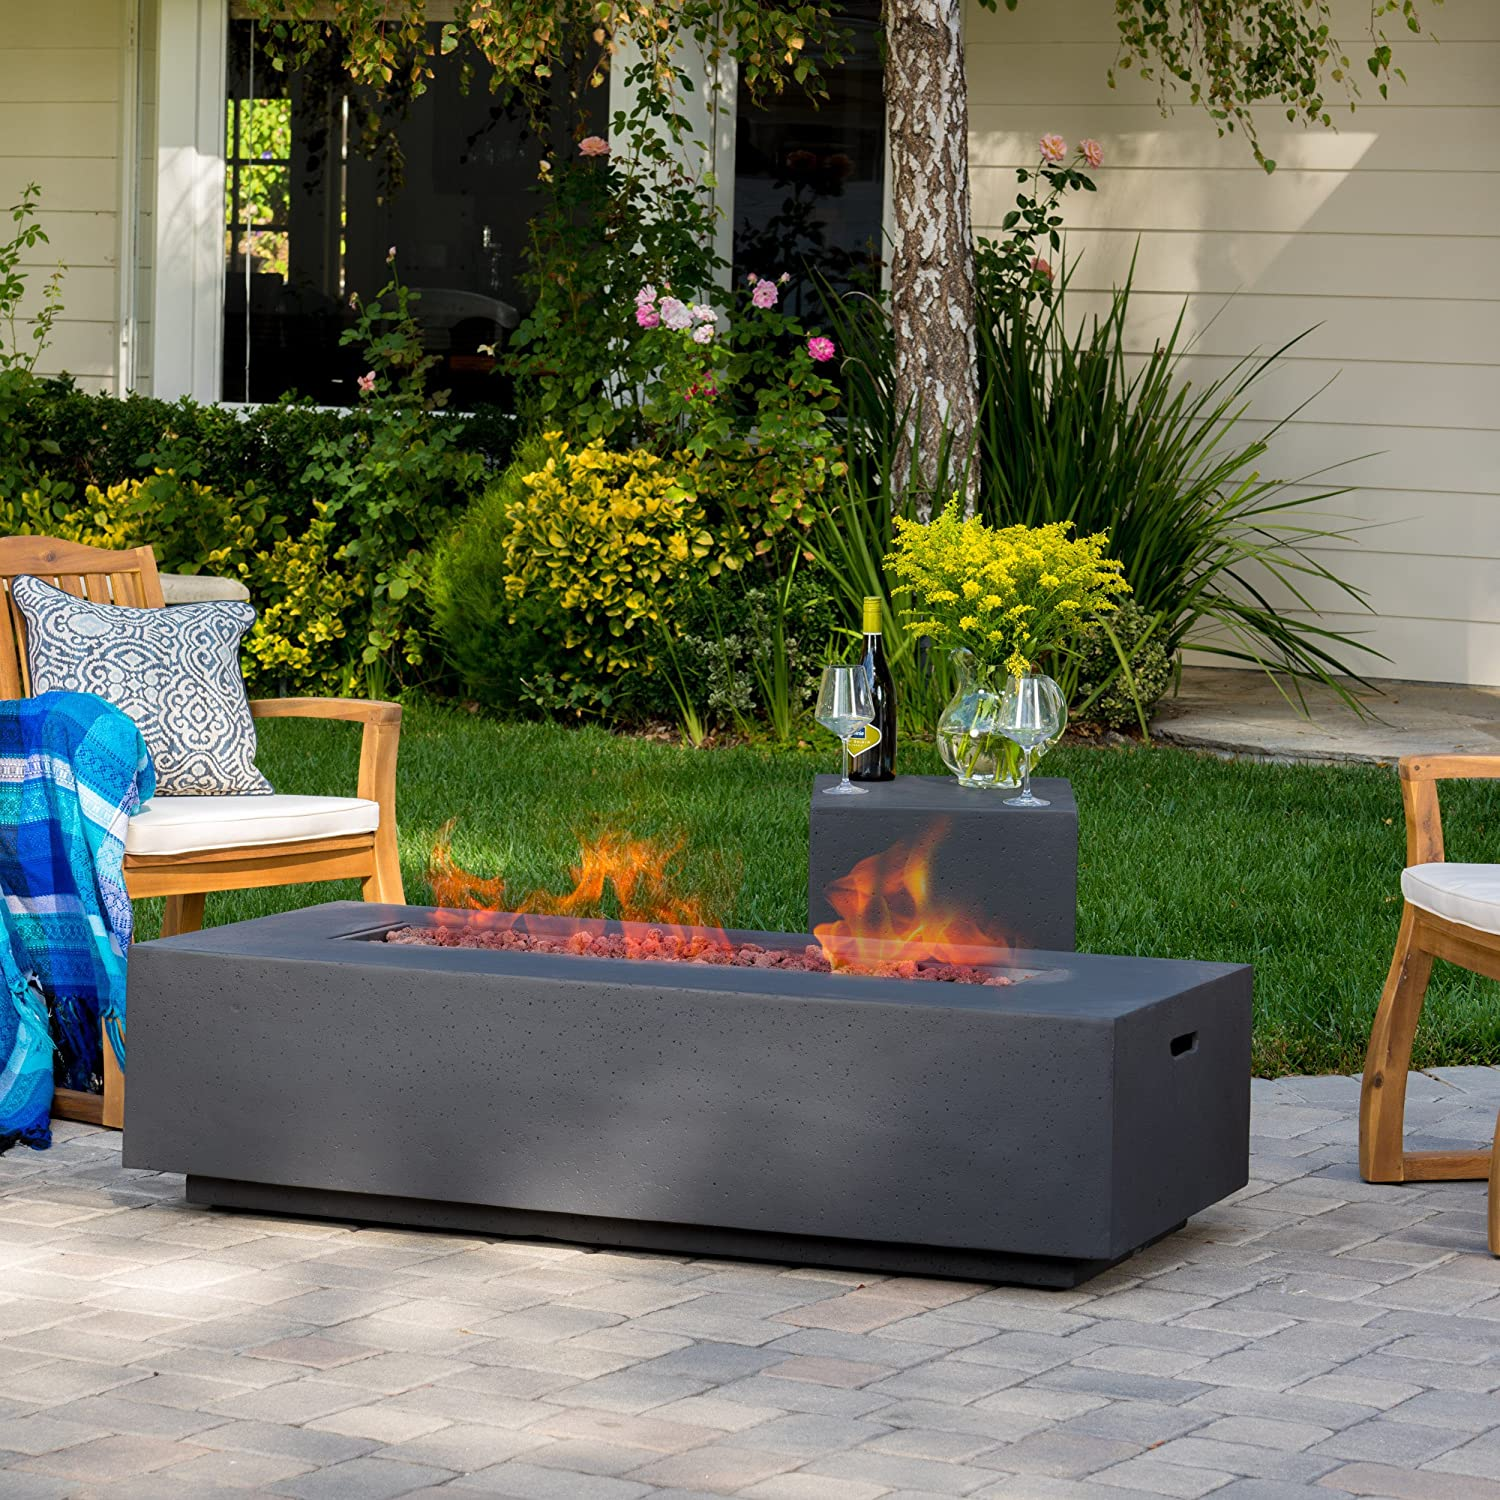 Baltimore Mall GDFStudio Jaxon Outdoor Fire Table with Lava Holder Limited time for free shipping Rocks Tank